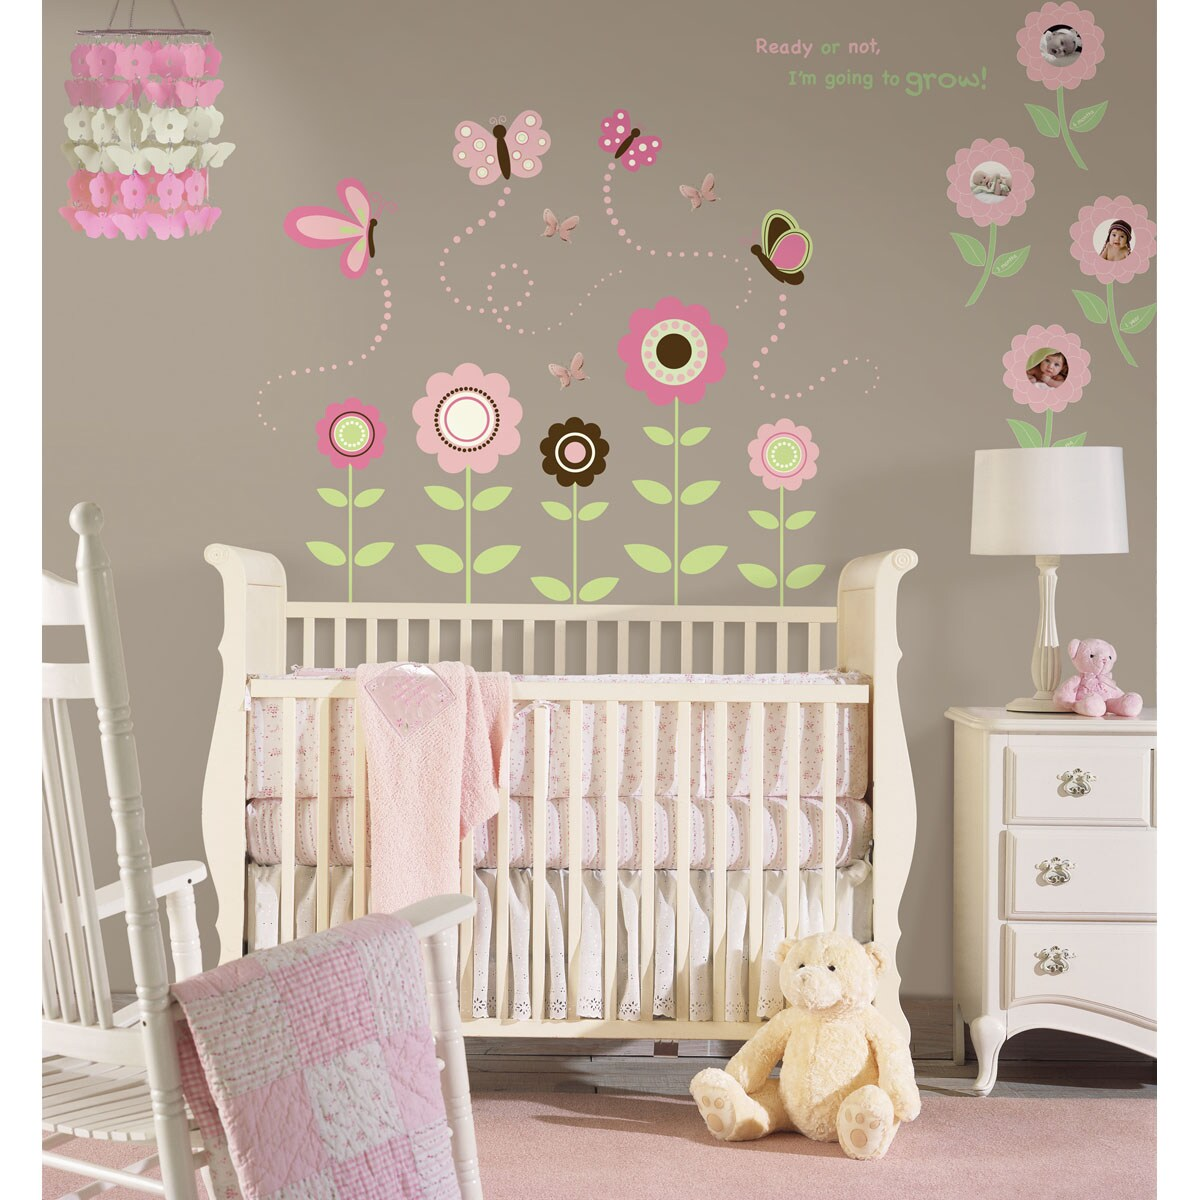 Wallpops Butterfly Flower Vinyl Wall Art and Chandelier B...